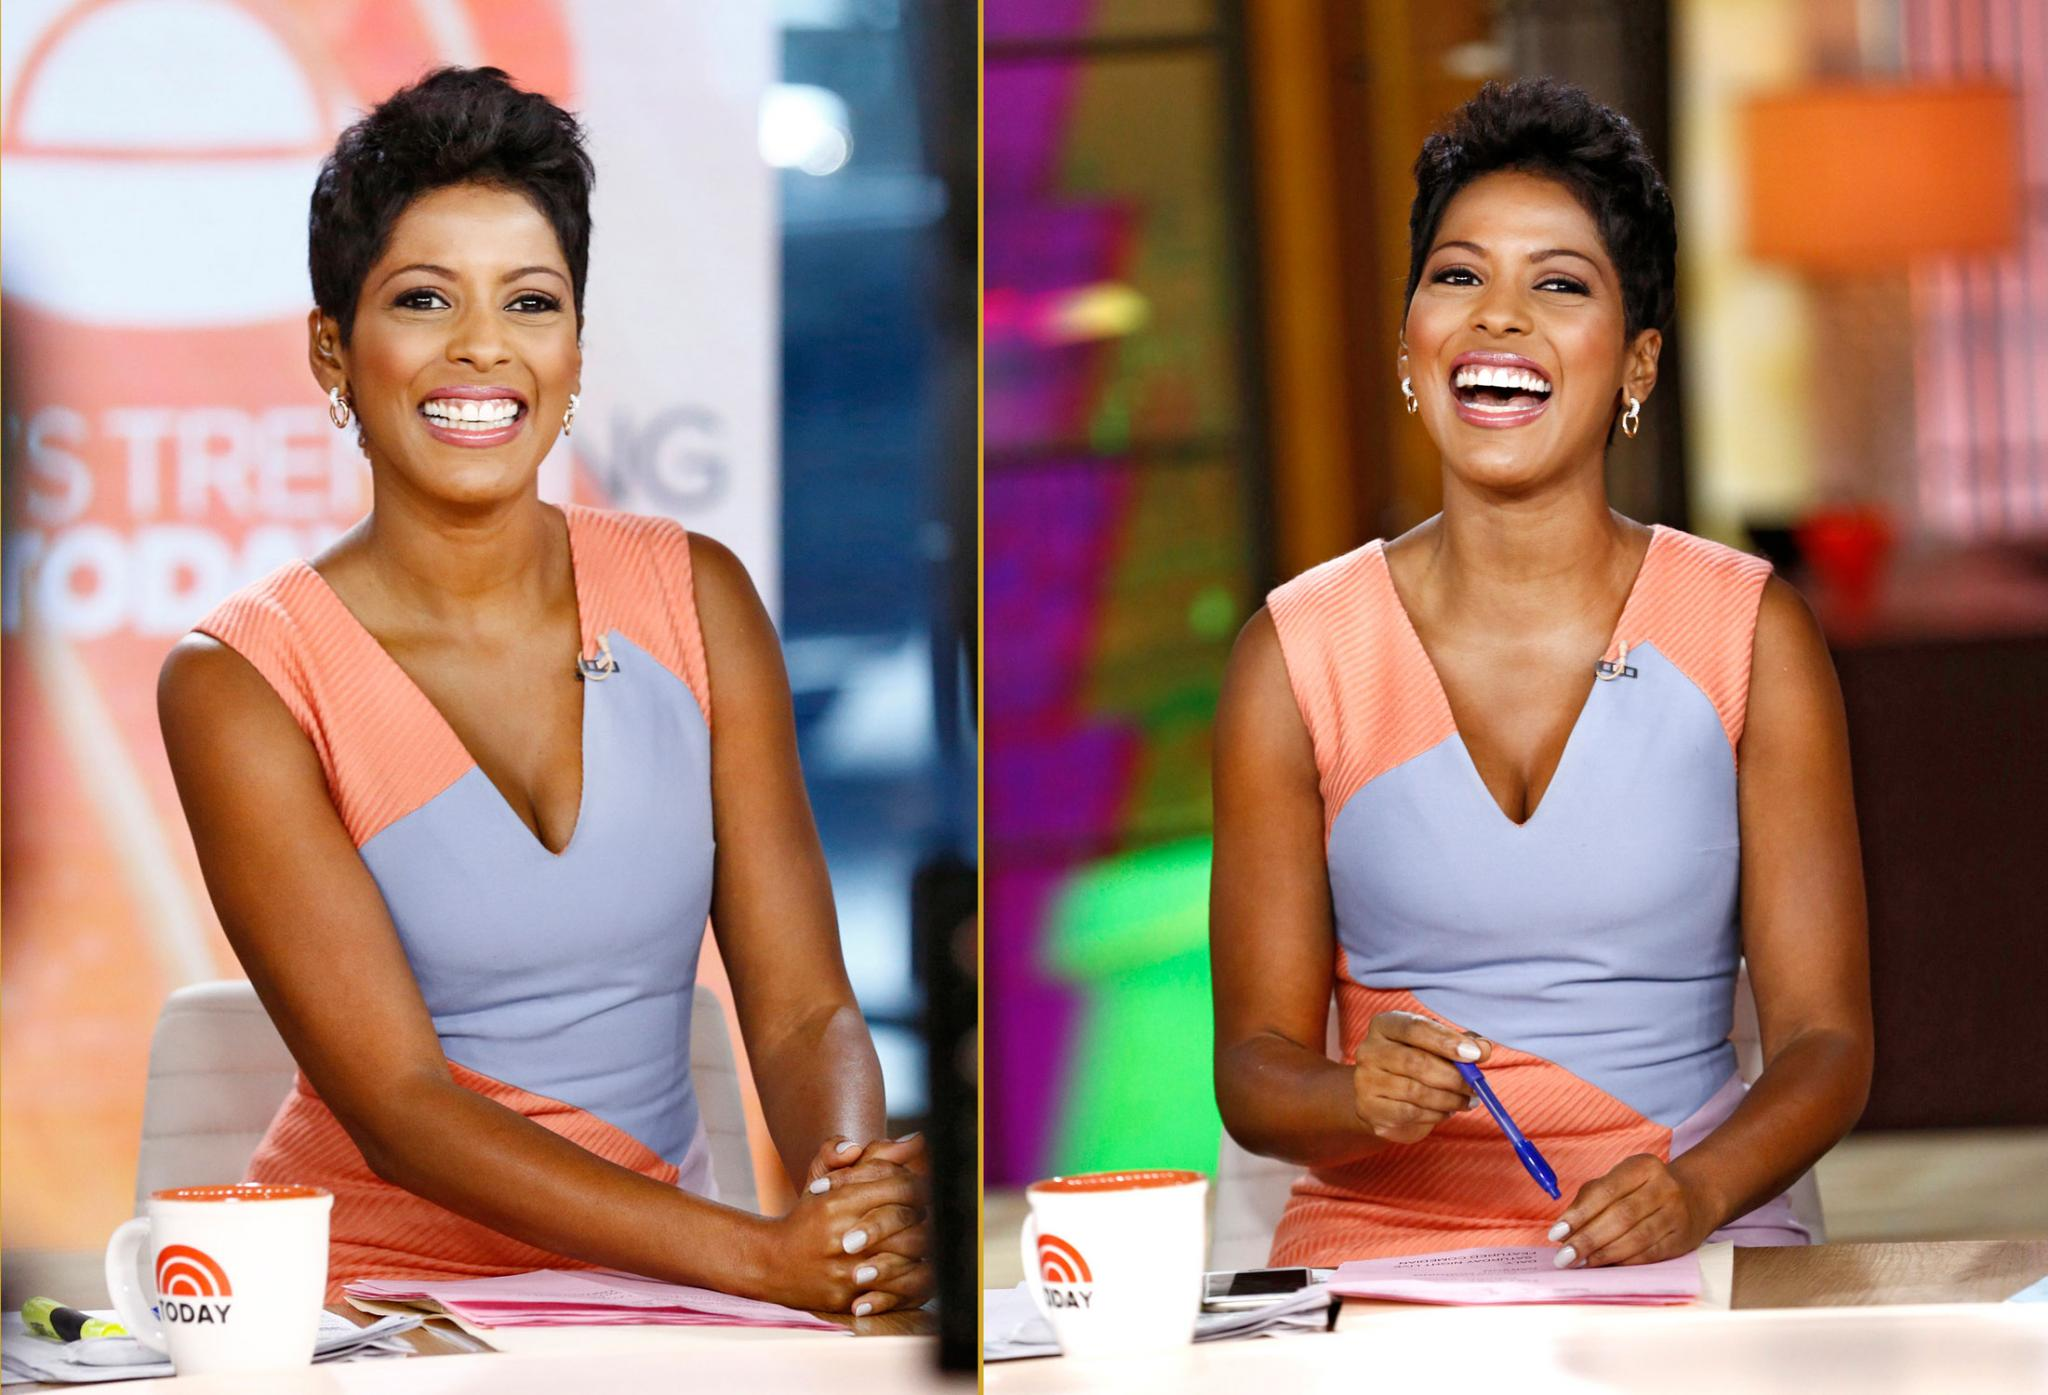 Why Tamron Hall Walked Away From Today: 'She Wasn't Going to Settle for Sitting on the Sidelines'